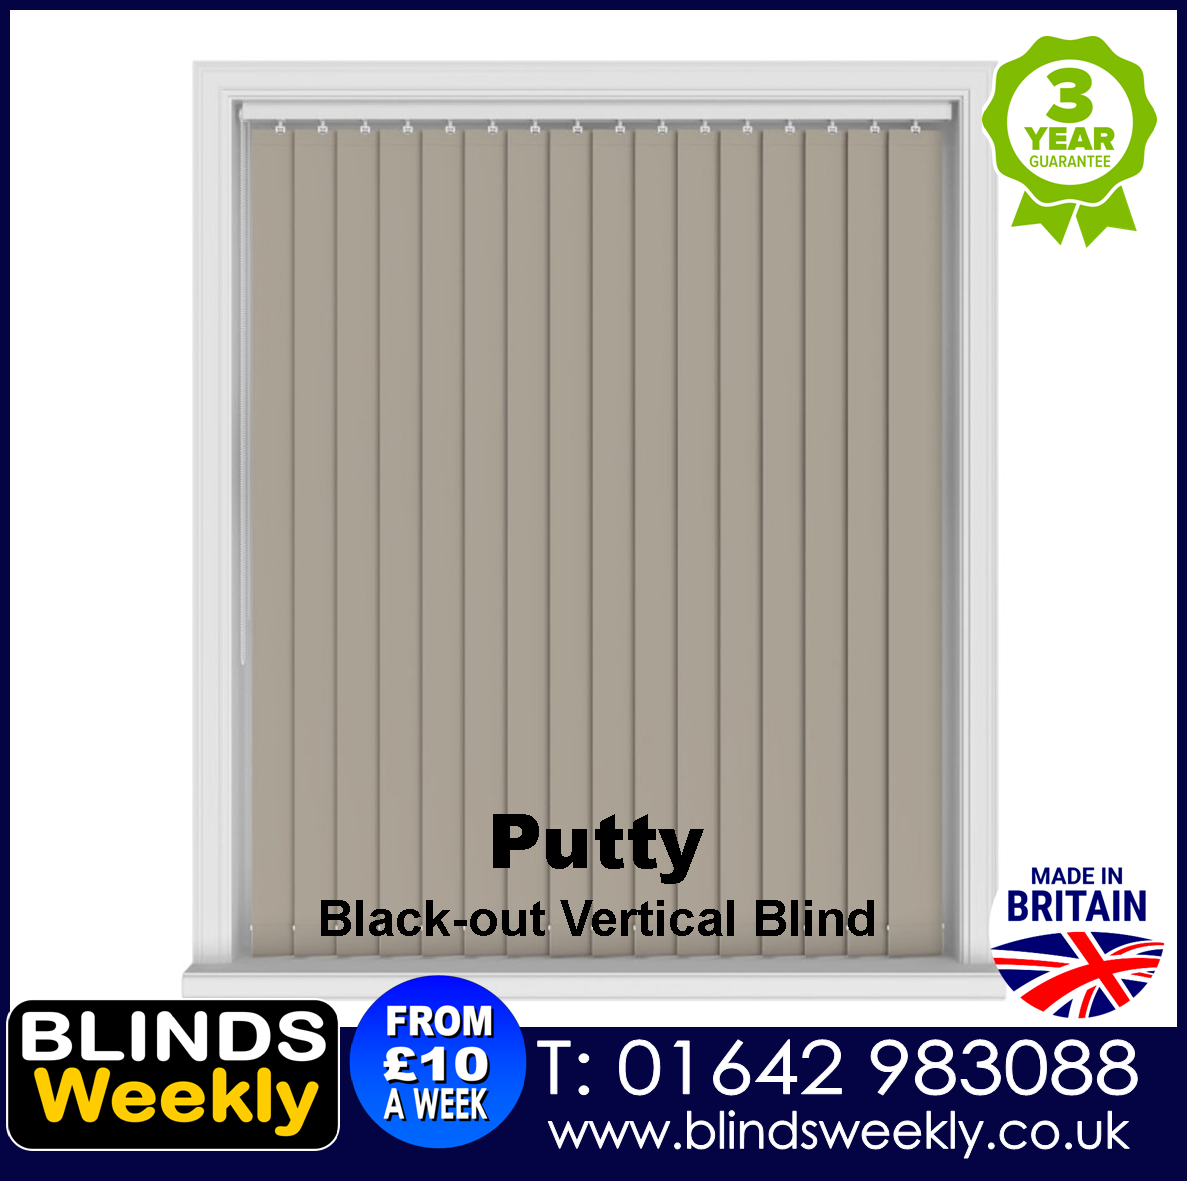 Blinds Weekly Blackout Vertical Blind - Putty